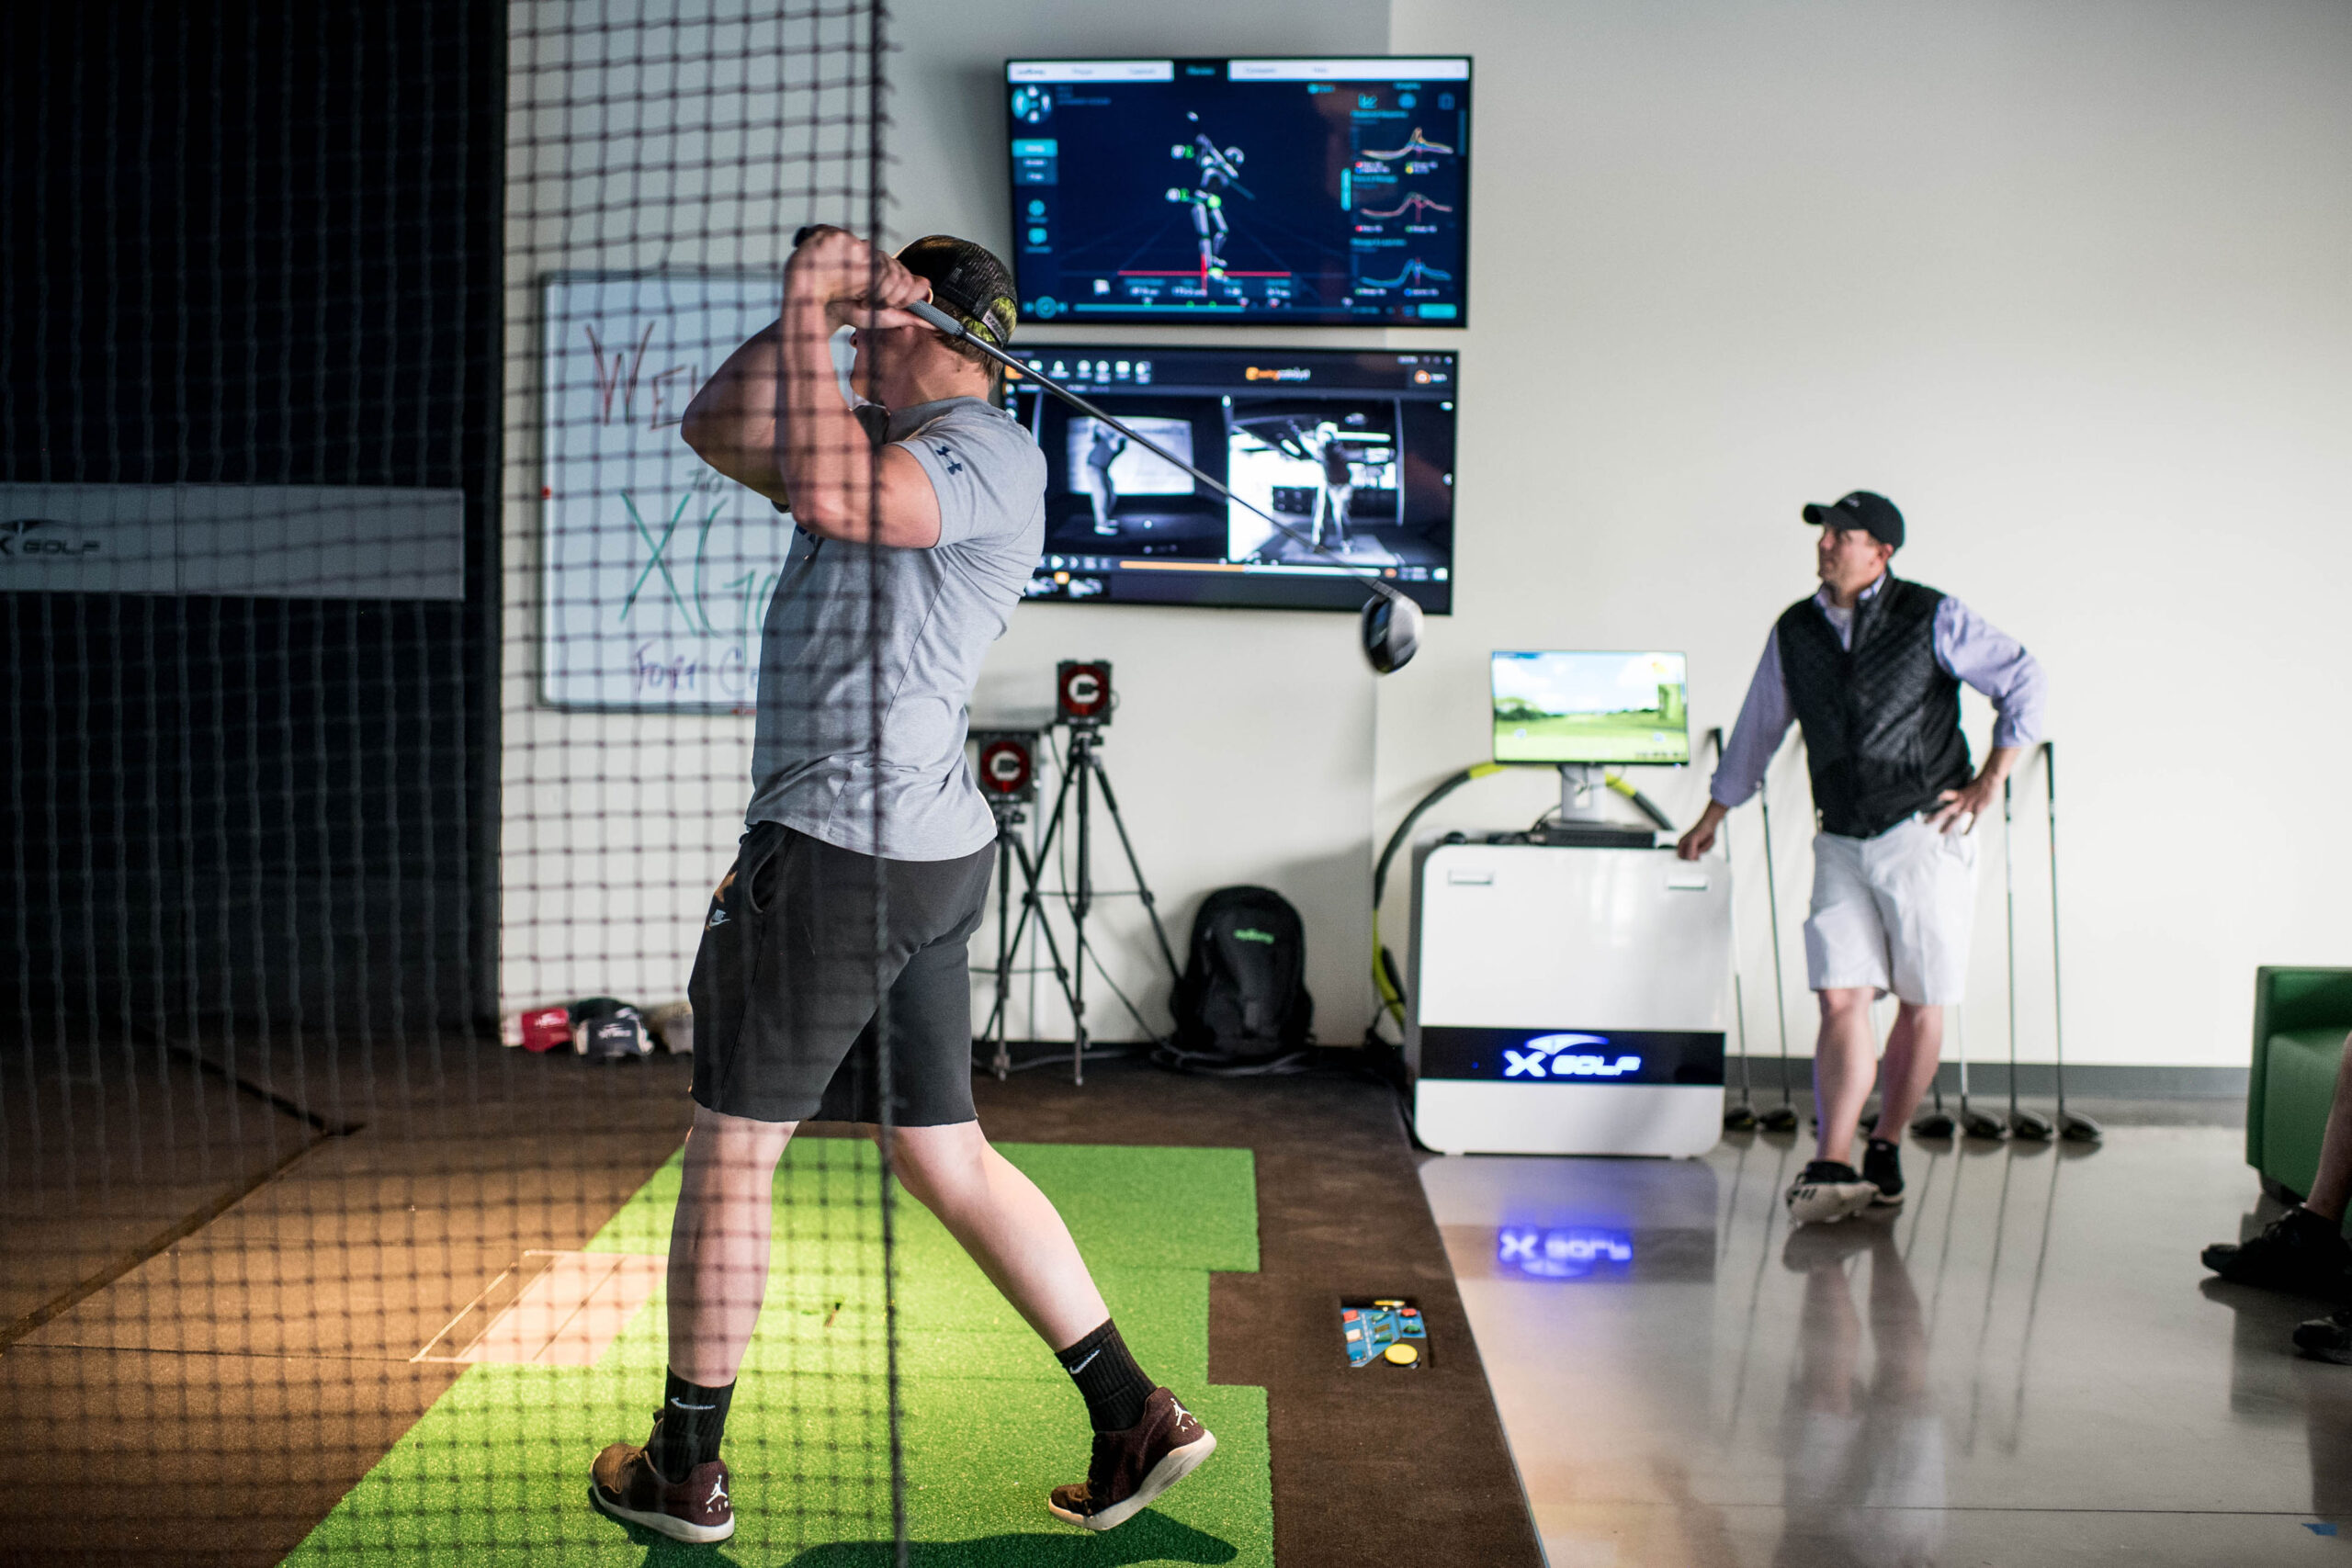 Image of man watching his friend hit at X-Golf